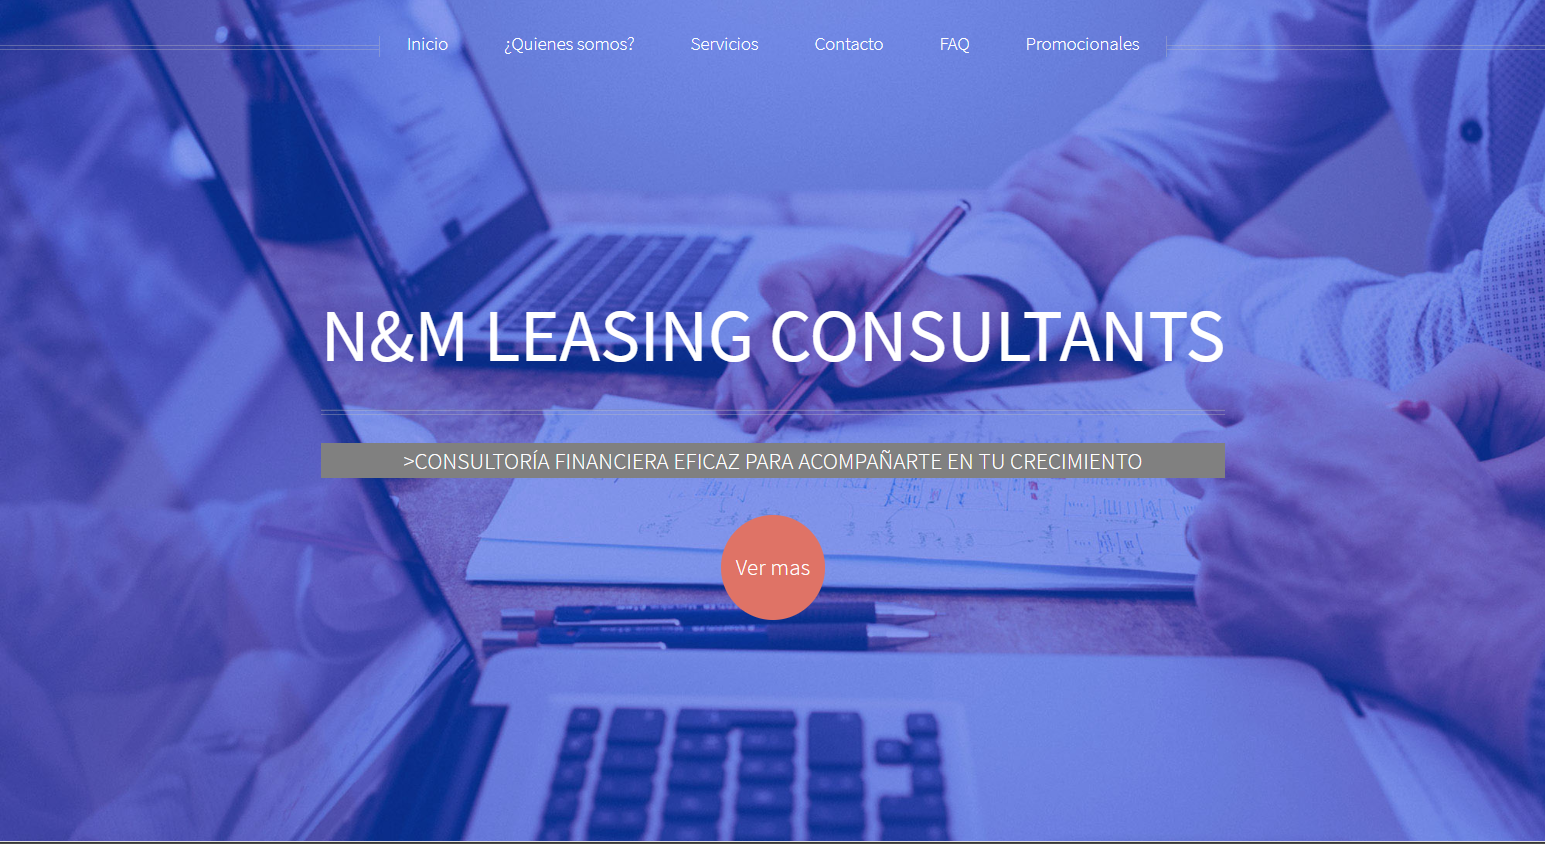 N&M LEASING CONSULTANTS